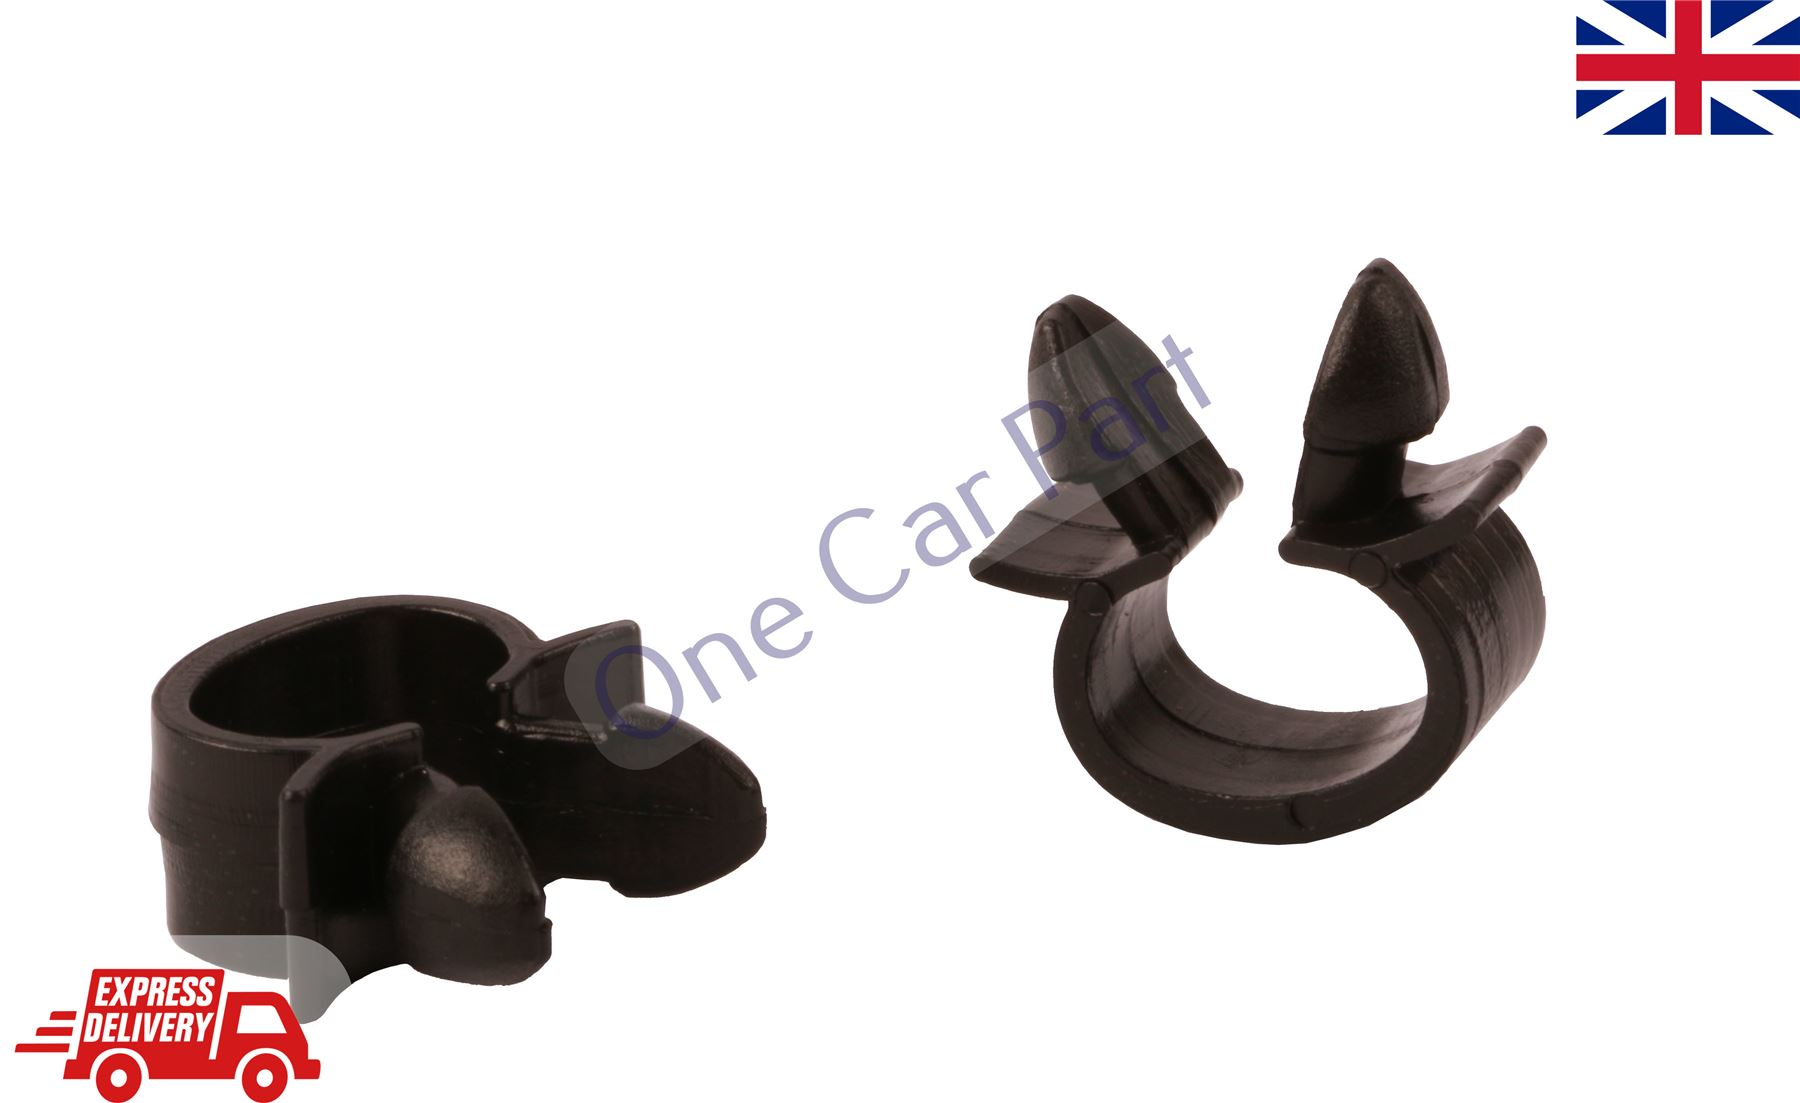 VOLKSWAGEN CABLE PIPE CLAMP WIRES WIRING LOOM HARNESS CLIP HOLDER  7703079070 archives.midweek.comMidweek.com